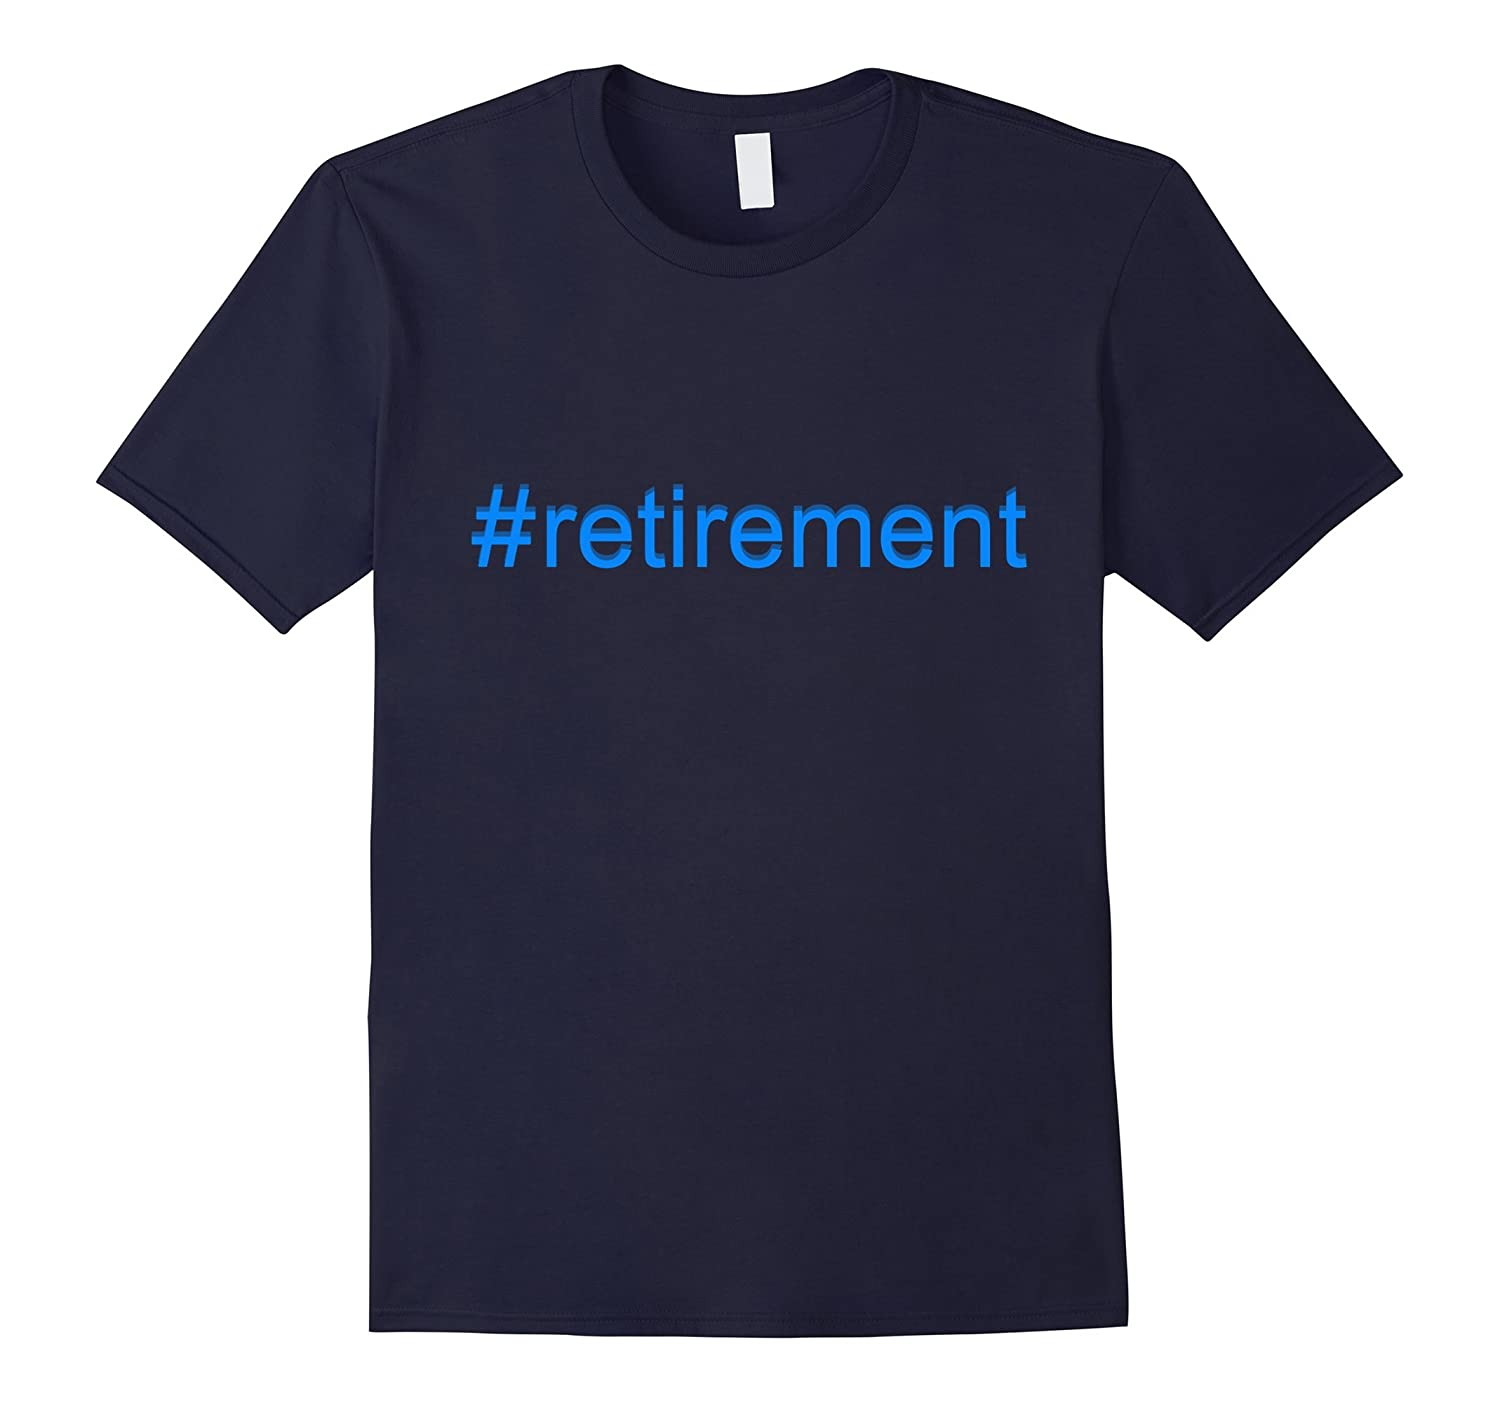 Retirement Shirts - Retirement Hastag Funny Tee Shirt-TH